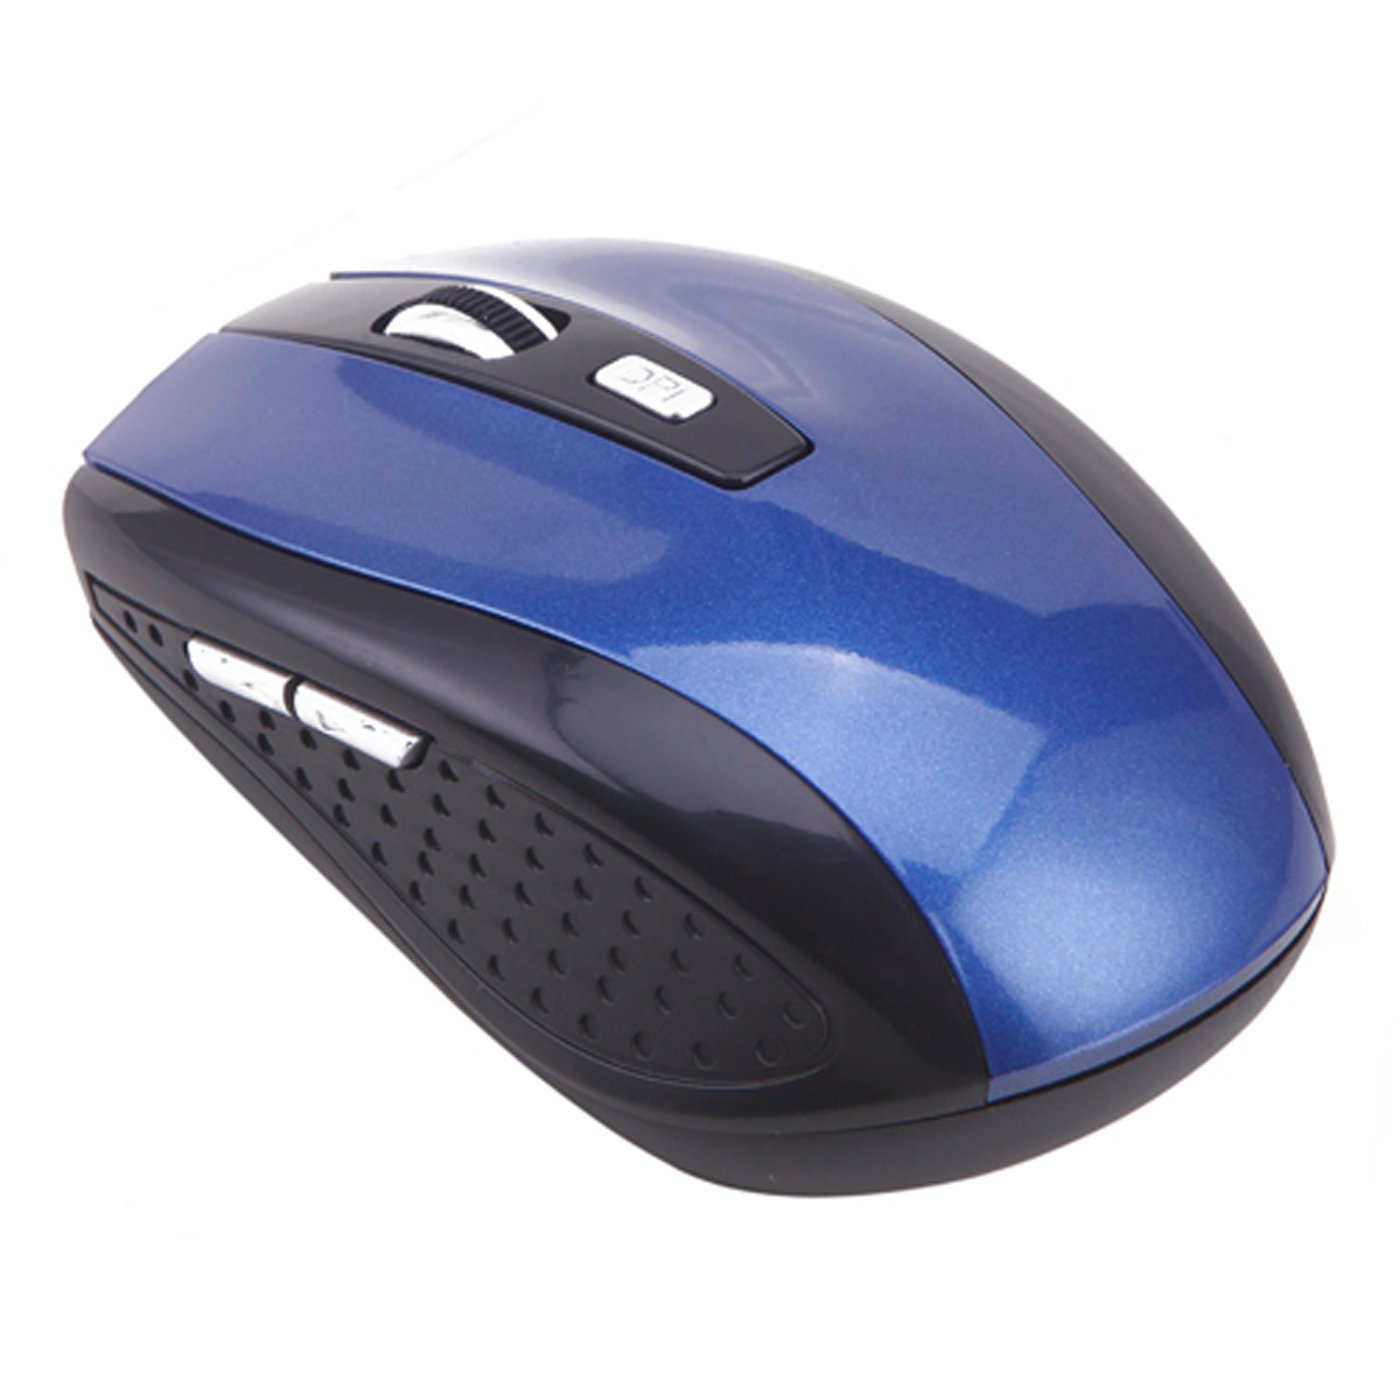 Hde Wireless Optical Computer Mouse 24 Ghz Cordless Usb 24ghz Special Lightweight With Receiver Adjustable Dpi Blue Computers Accessories